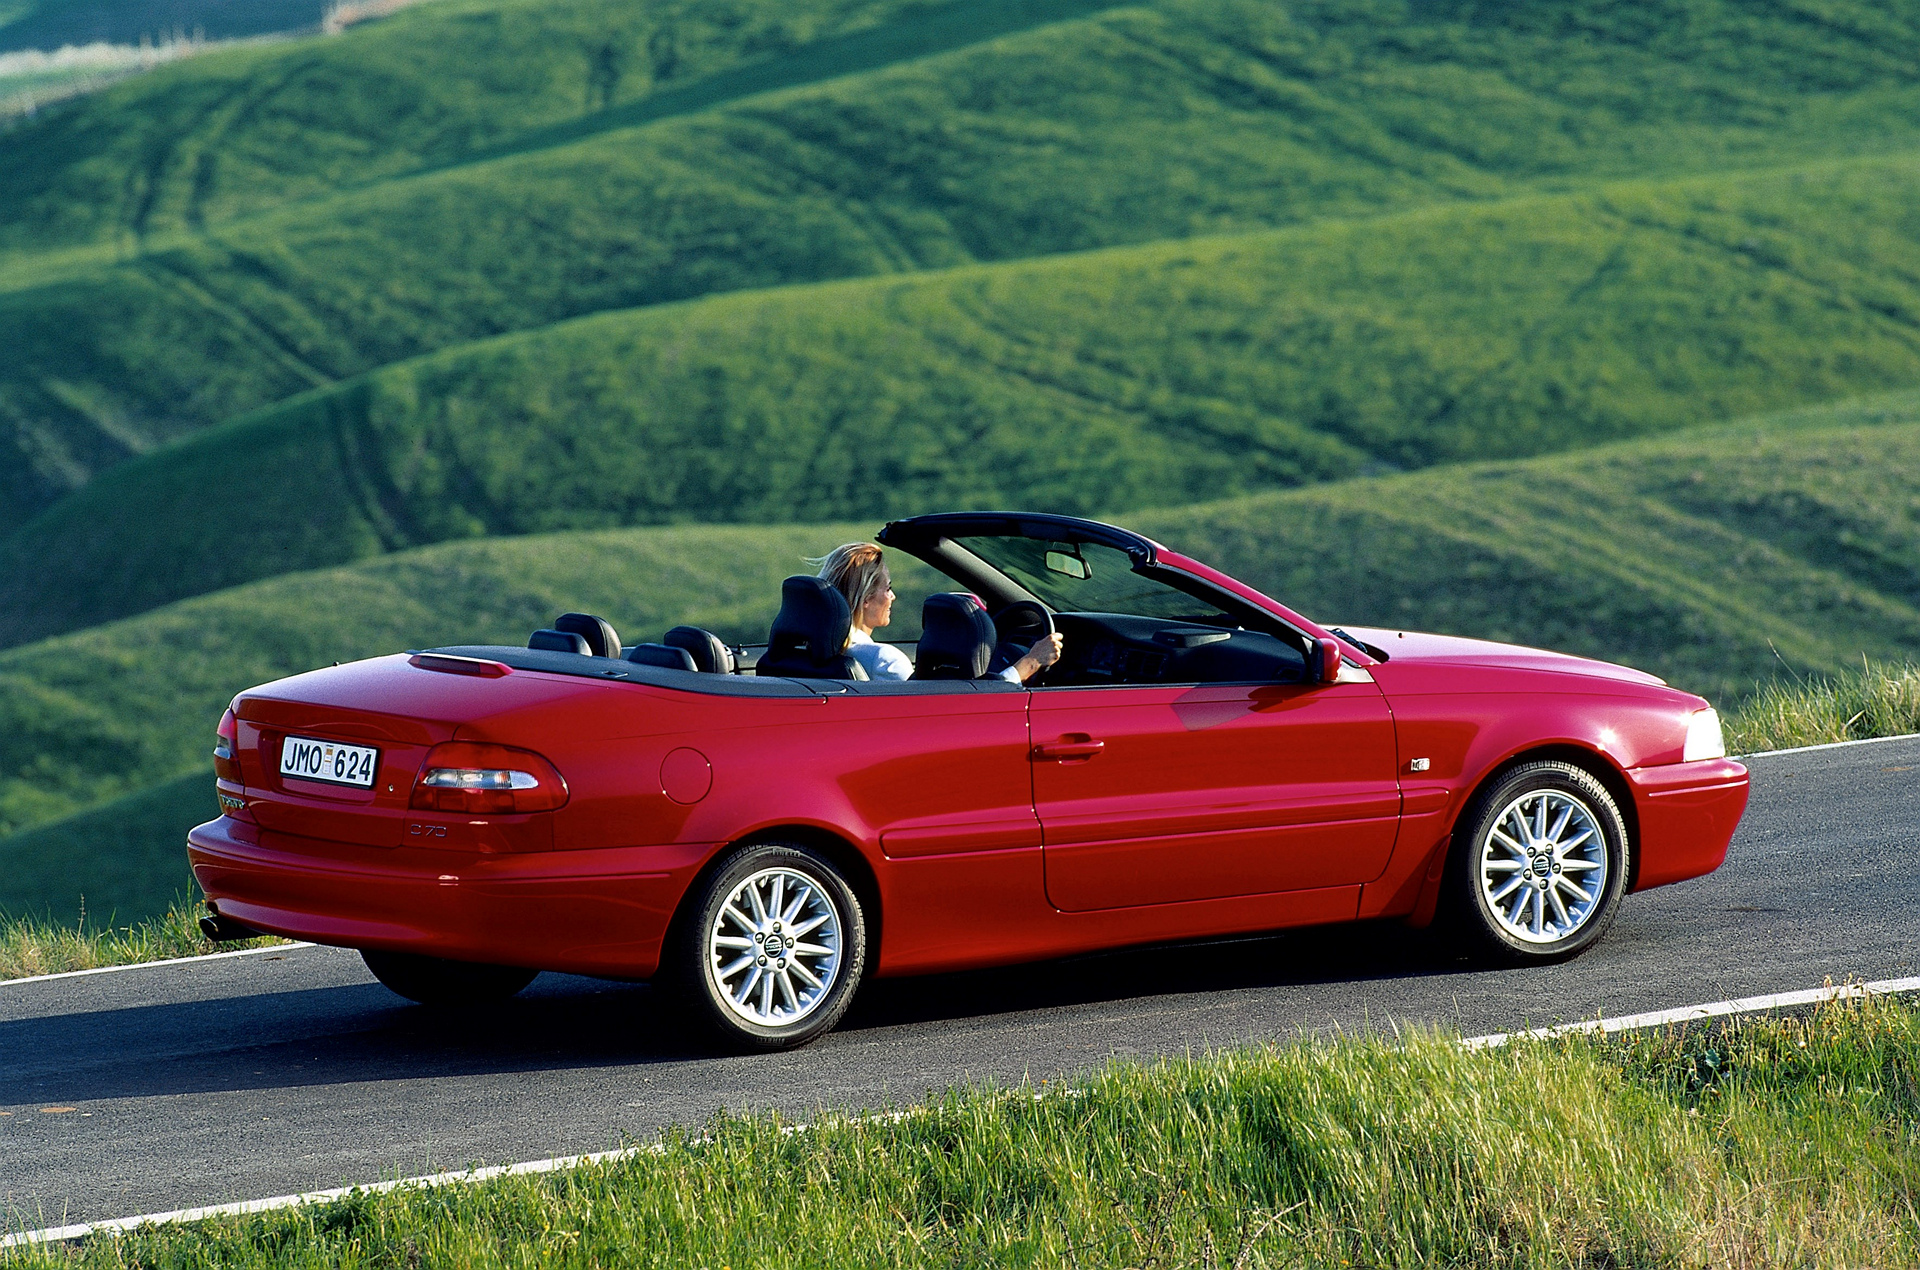 Volvo C70 Convertible © Zhejiang Geely Holding Group Co., Ltd